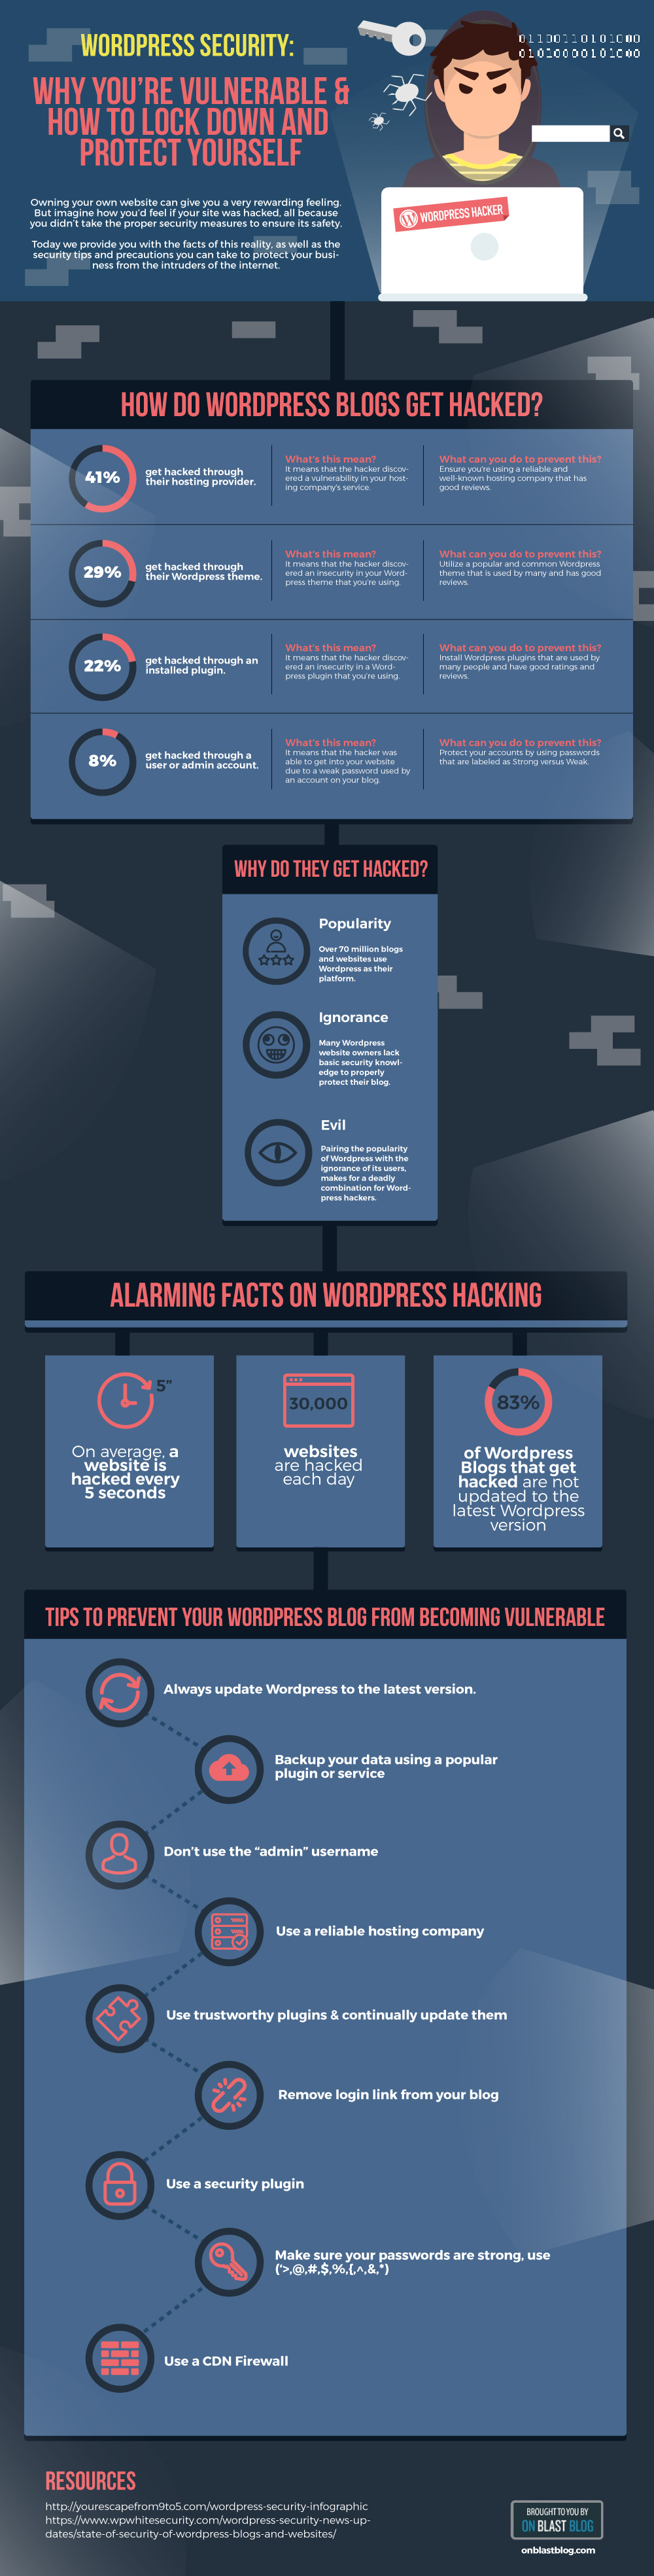 WordPress Security — The Beginner's Guide [Infographic]